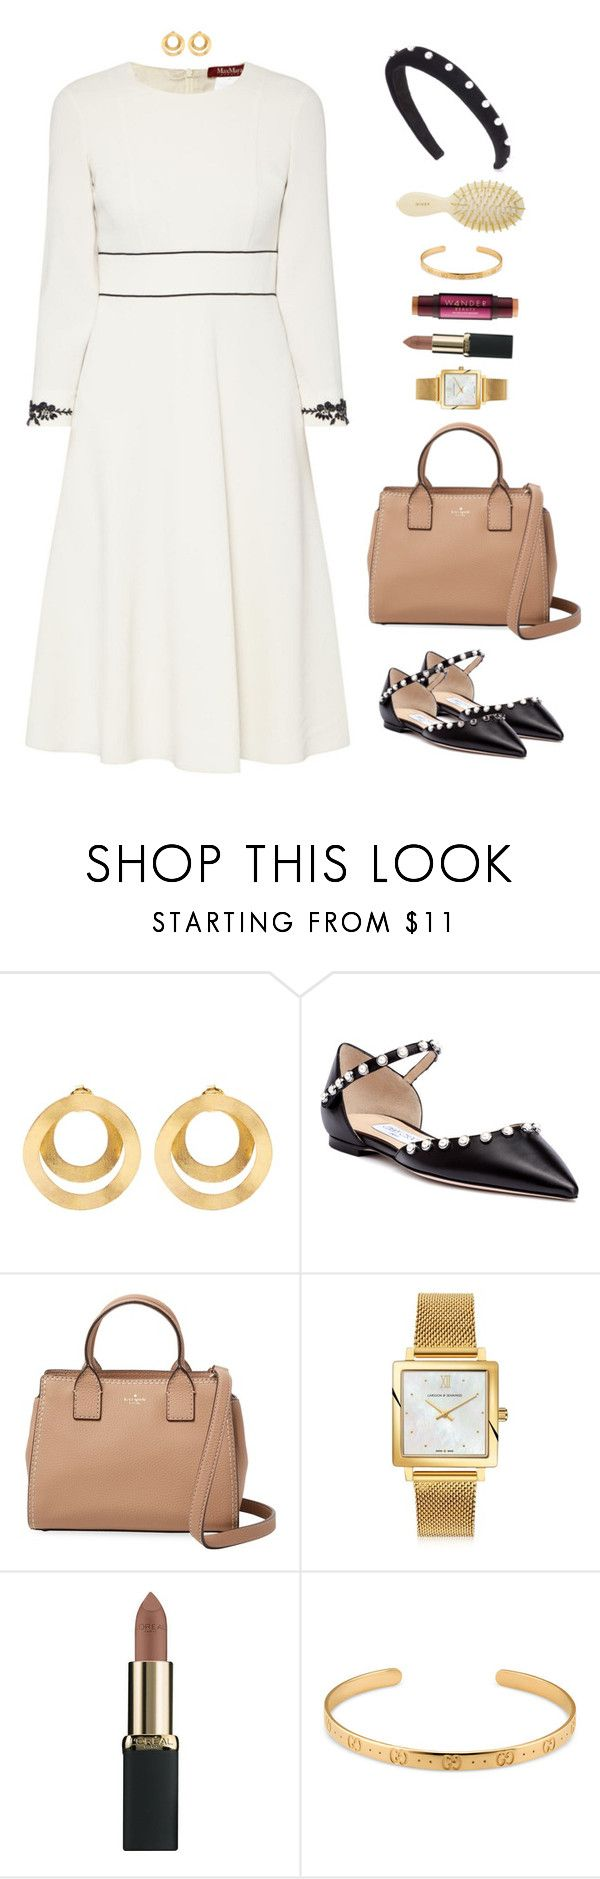 """""""Allure"""" by xoxomuty on Polyvore featuring Anissa Kermiche, Jimmy Choo, Kate Spade, Larsson & Jennings, L'Oréal Paris, Gucci, Altuzarra, ootd and polyvoreOOTD"""